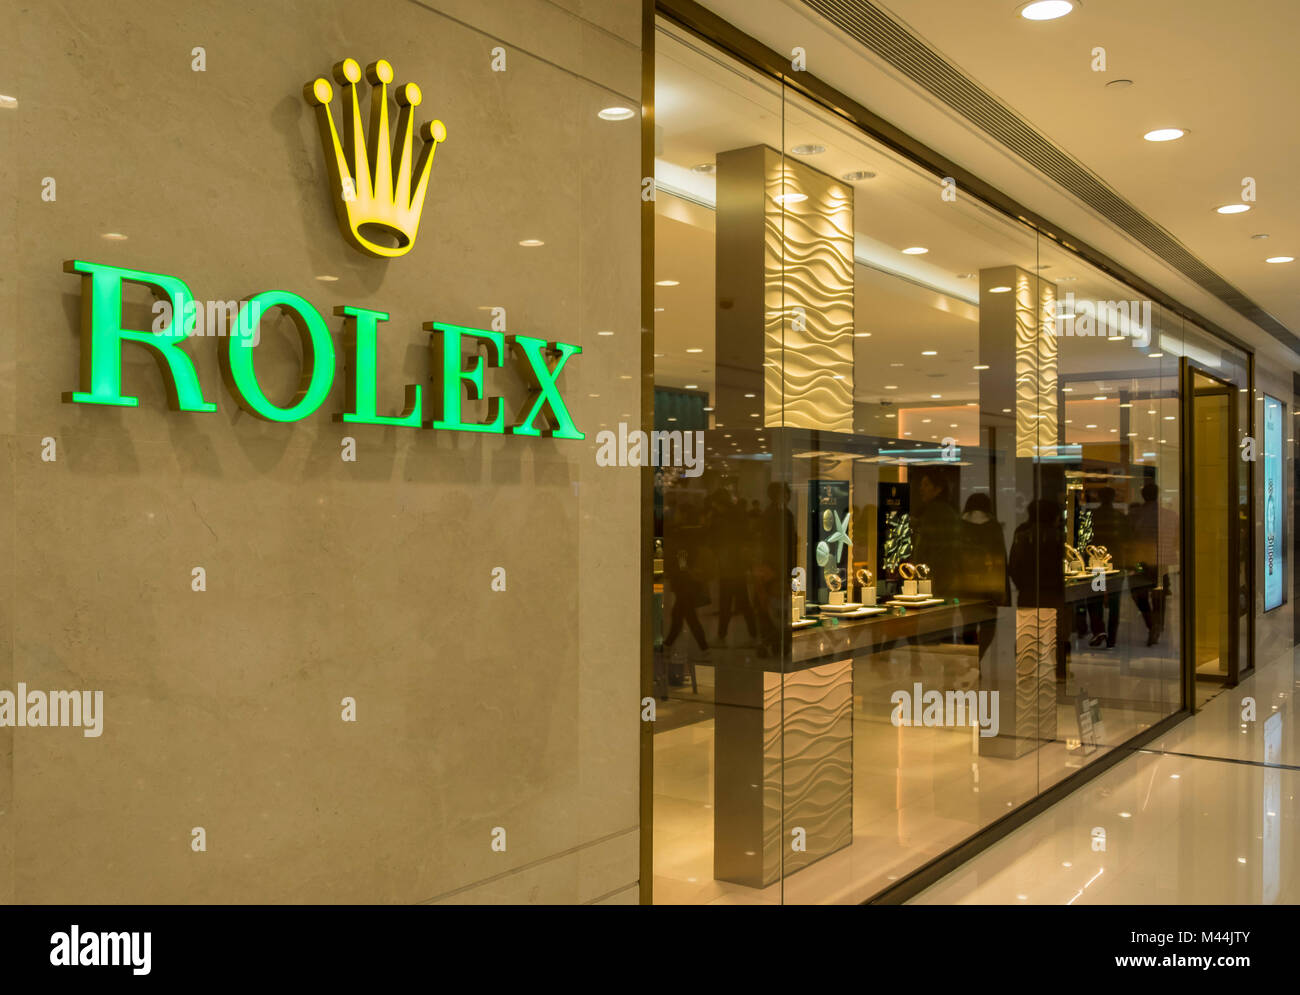 b242a012a00 Rolex Watch Store Stock Photos & Rolex Watch Store Stock Images - Alamy